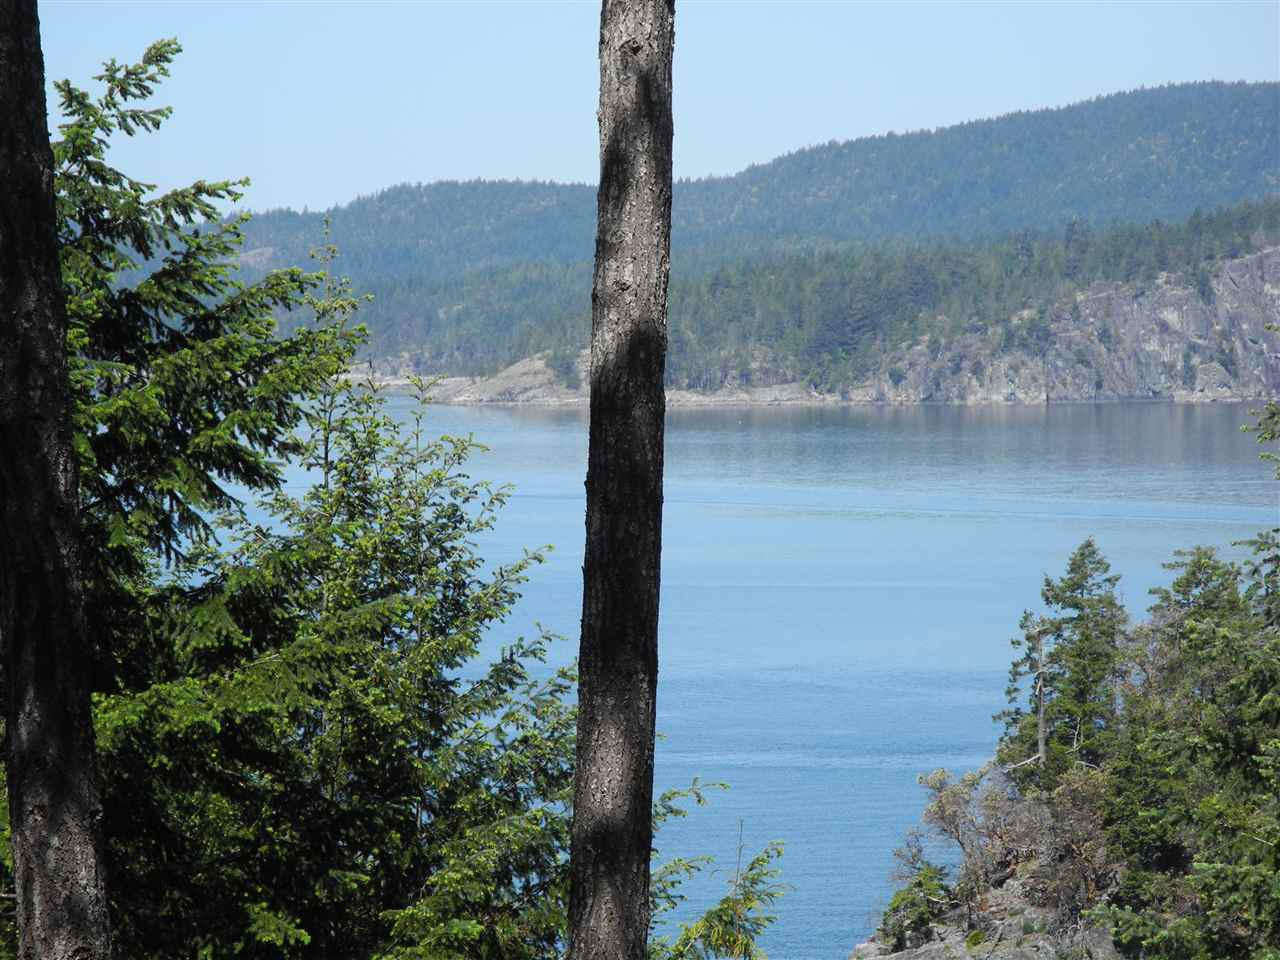 Photo 2: 4436 MCLINTOCK Road in Pender Harbour: Pender Harbour Egmont House for sale (Sunshine Coast)  : MLS(r) # R2068891